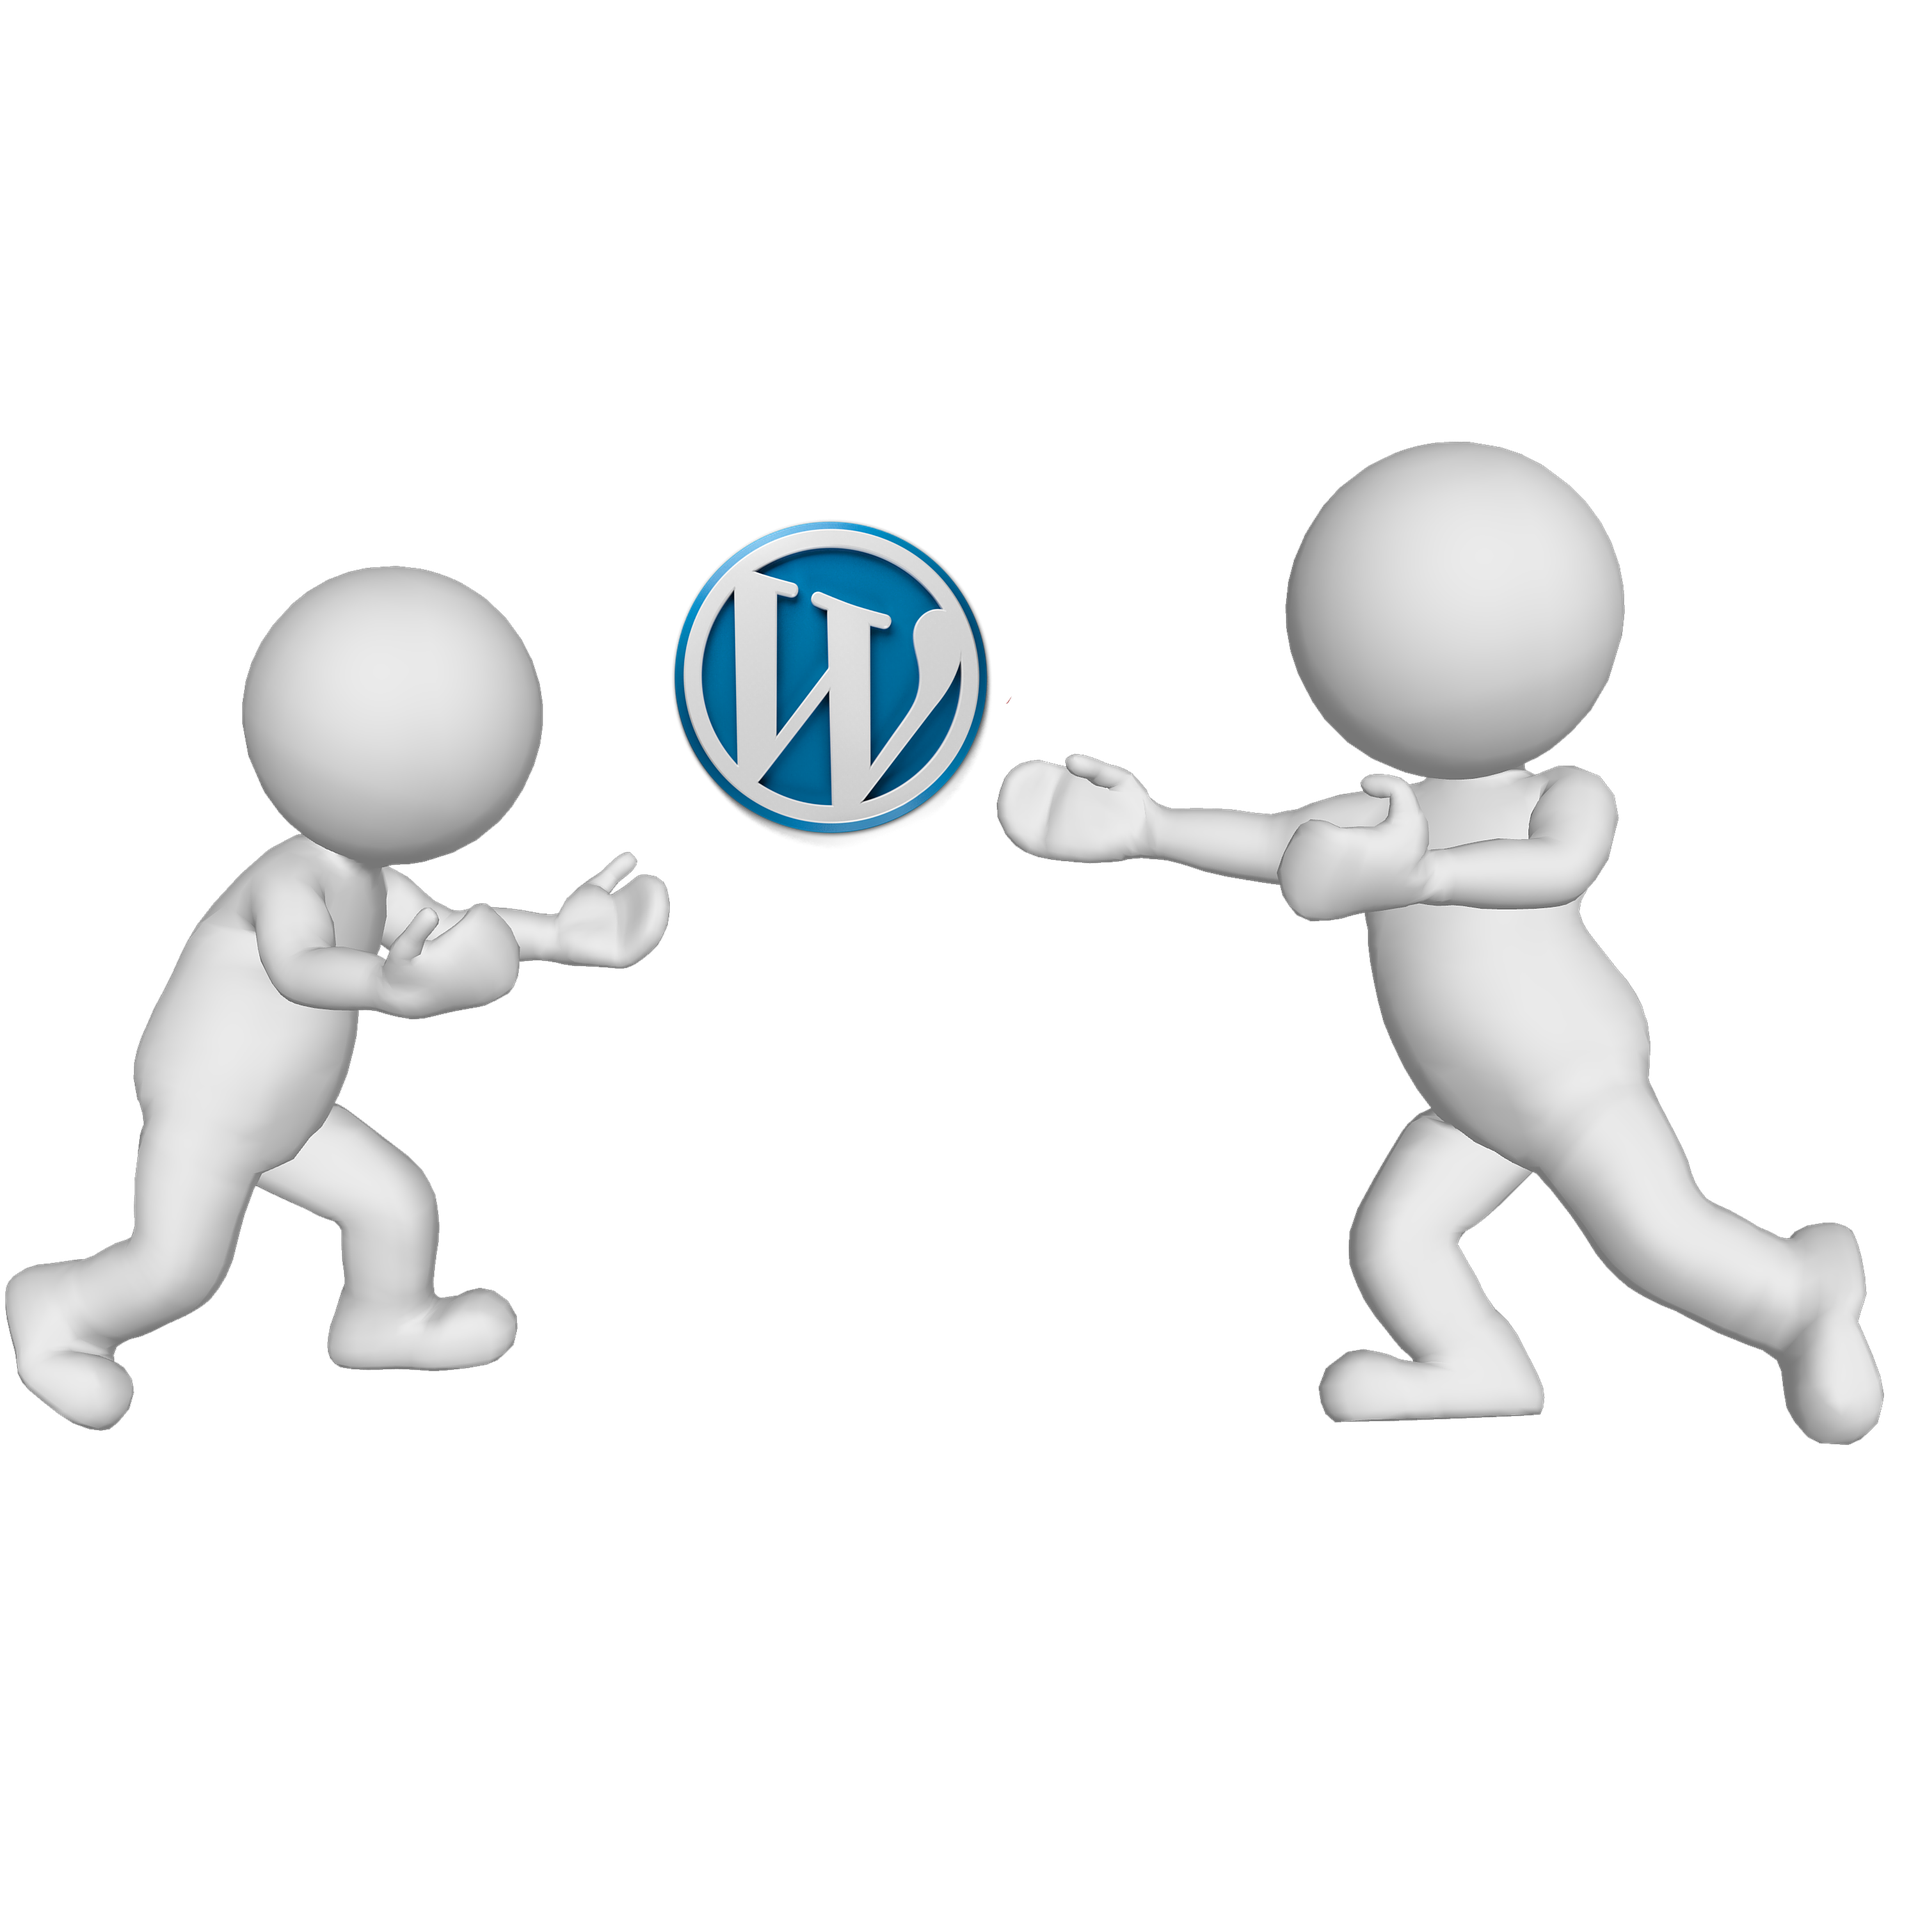 Wordpress logo between two white dudes